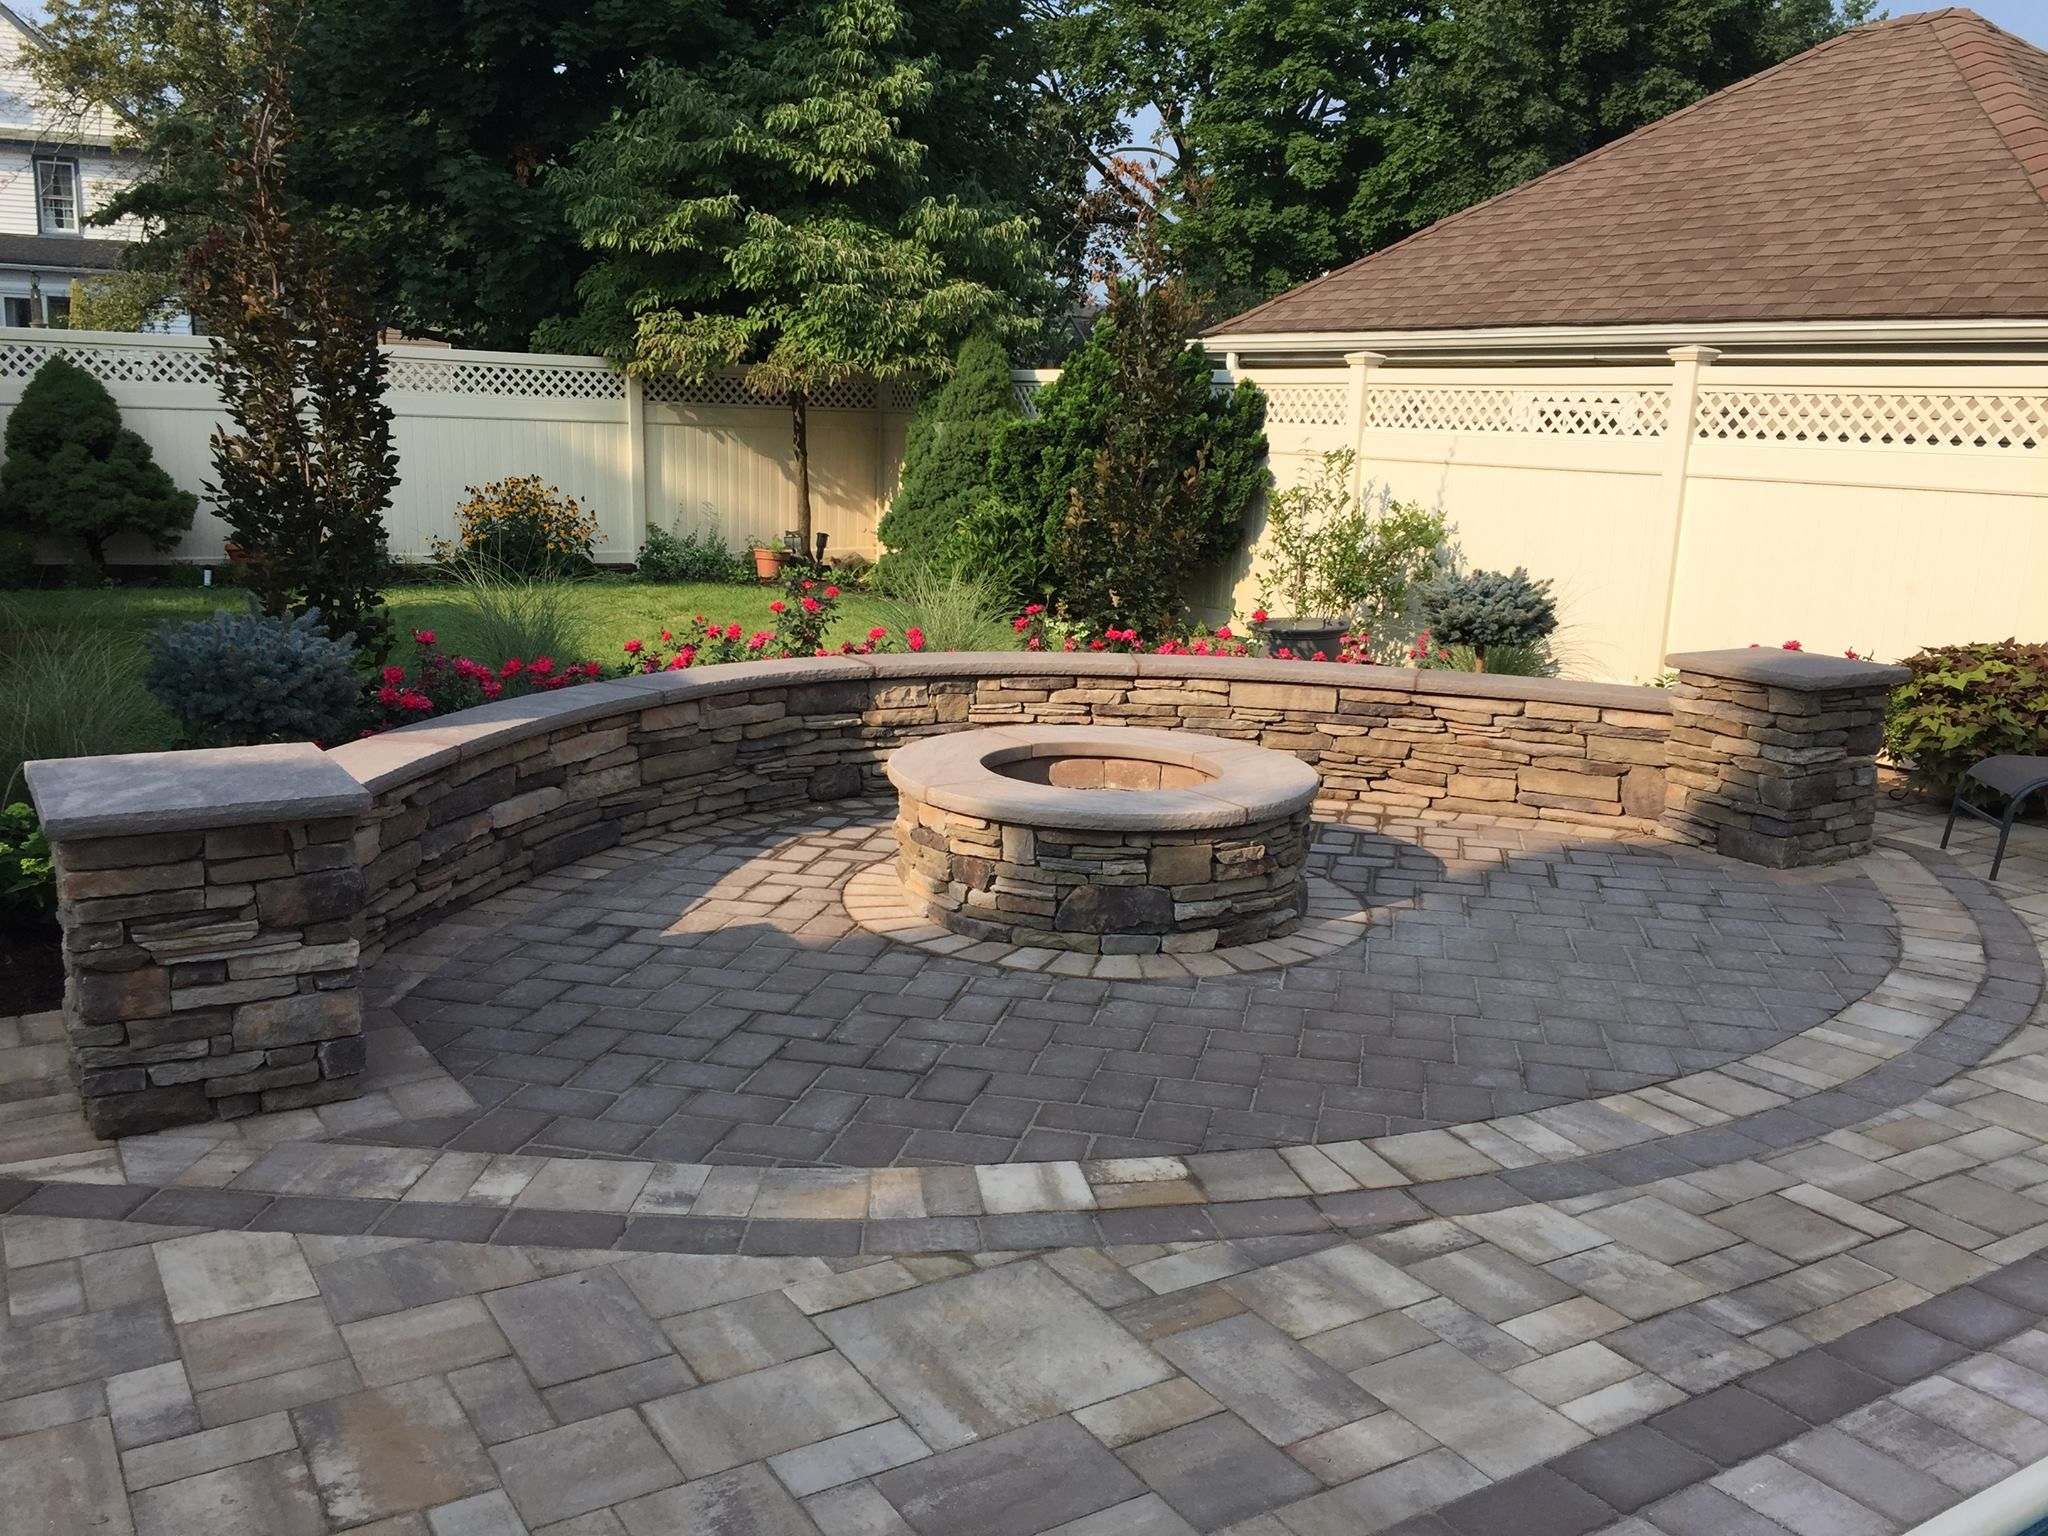 Paved Patio With Stone Veneer Sitting Wall Circular Fire